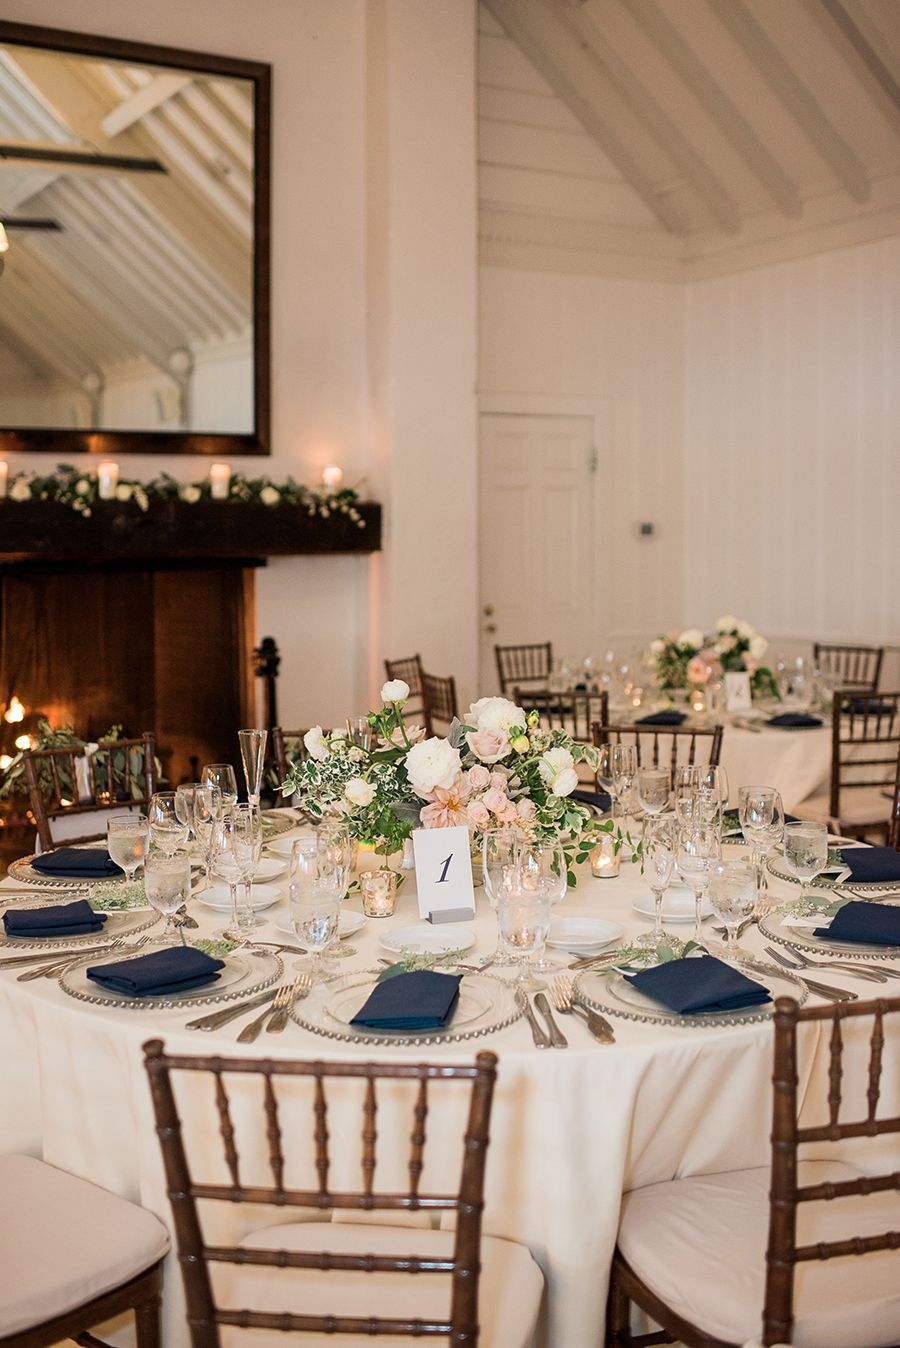 Yacht wedding decorations  This Is How a Romantic Nautical Wedding Is Done  wedding DECOR